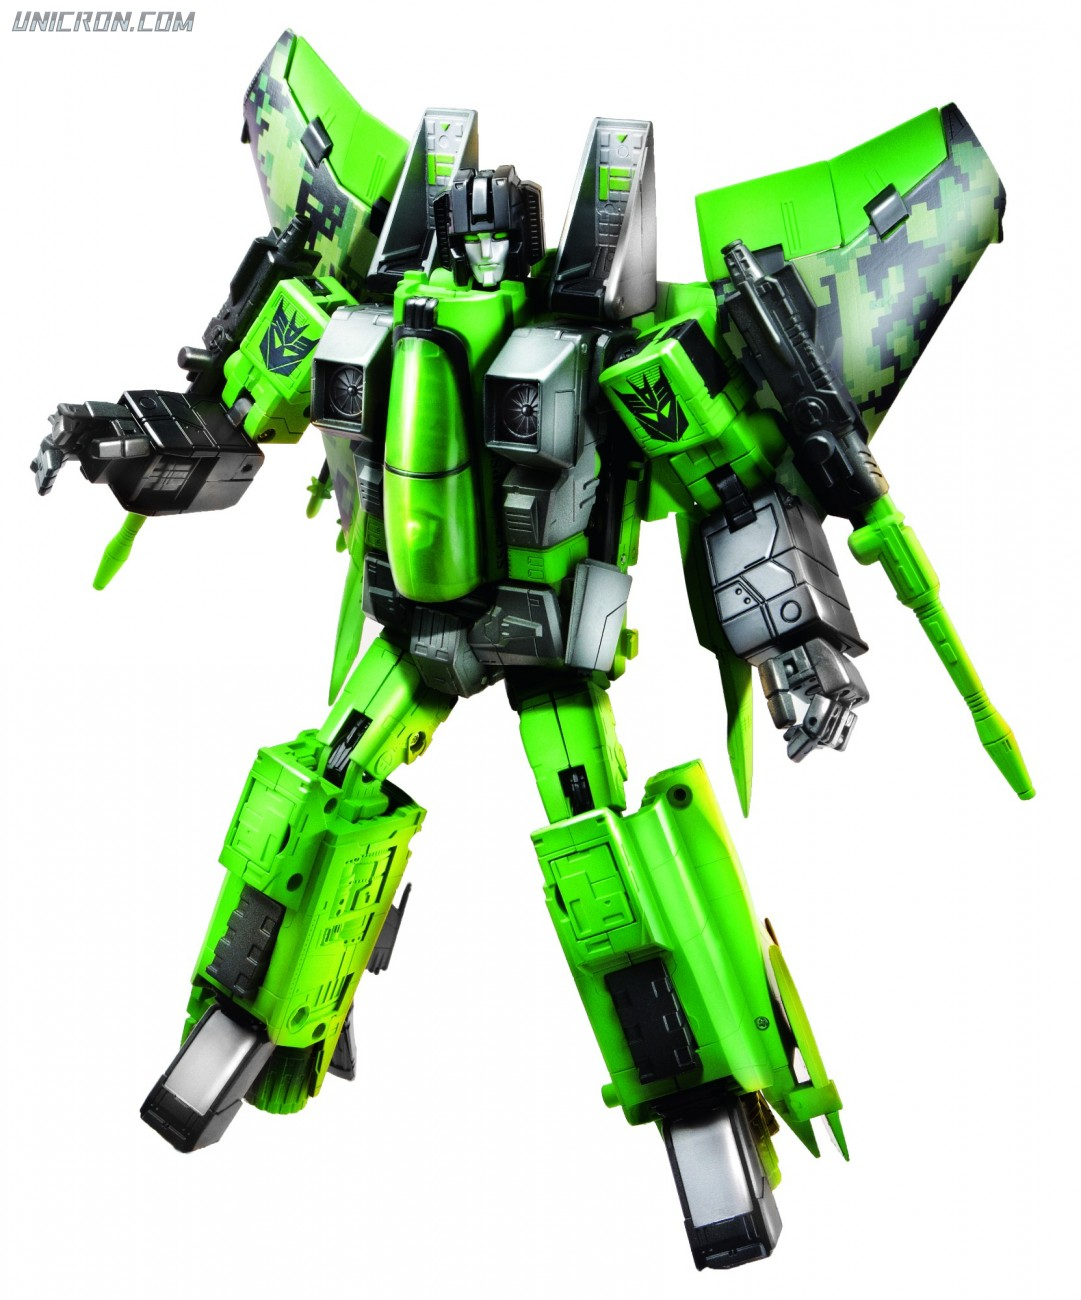 Transformers Masterpiece Masterpiece Acid Storm toy